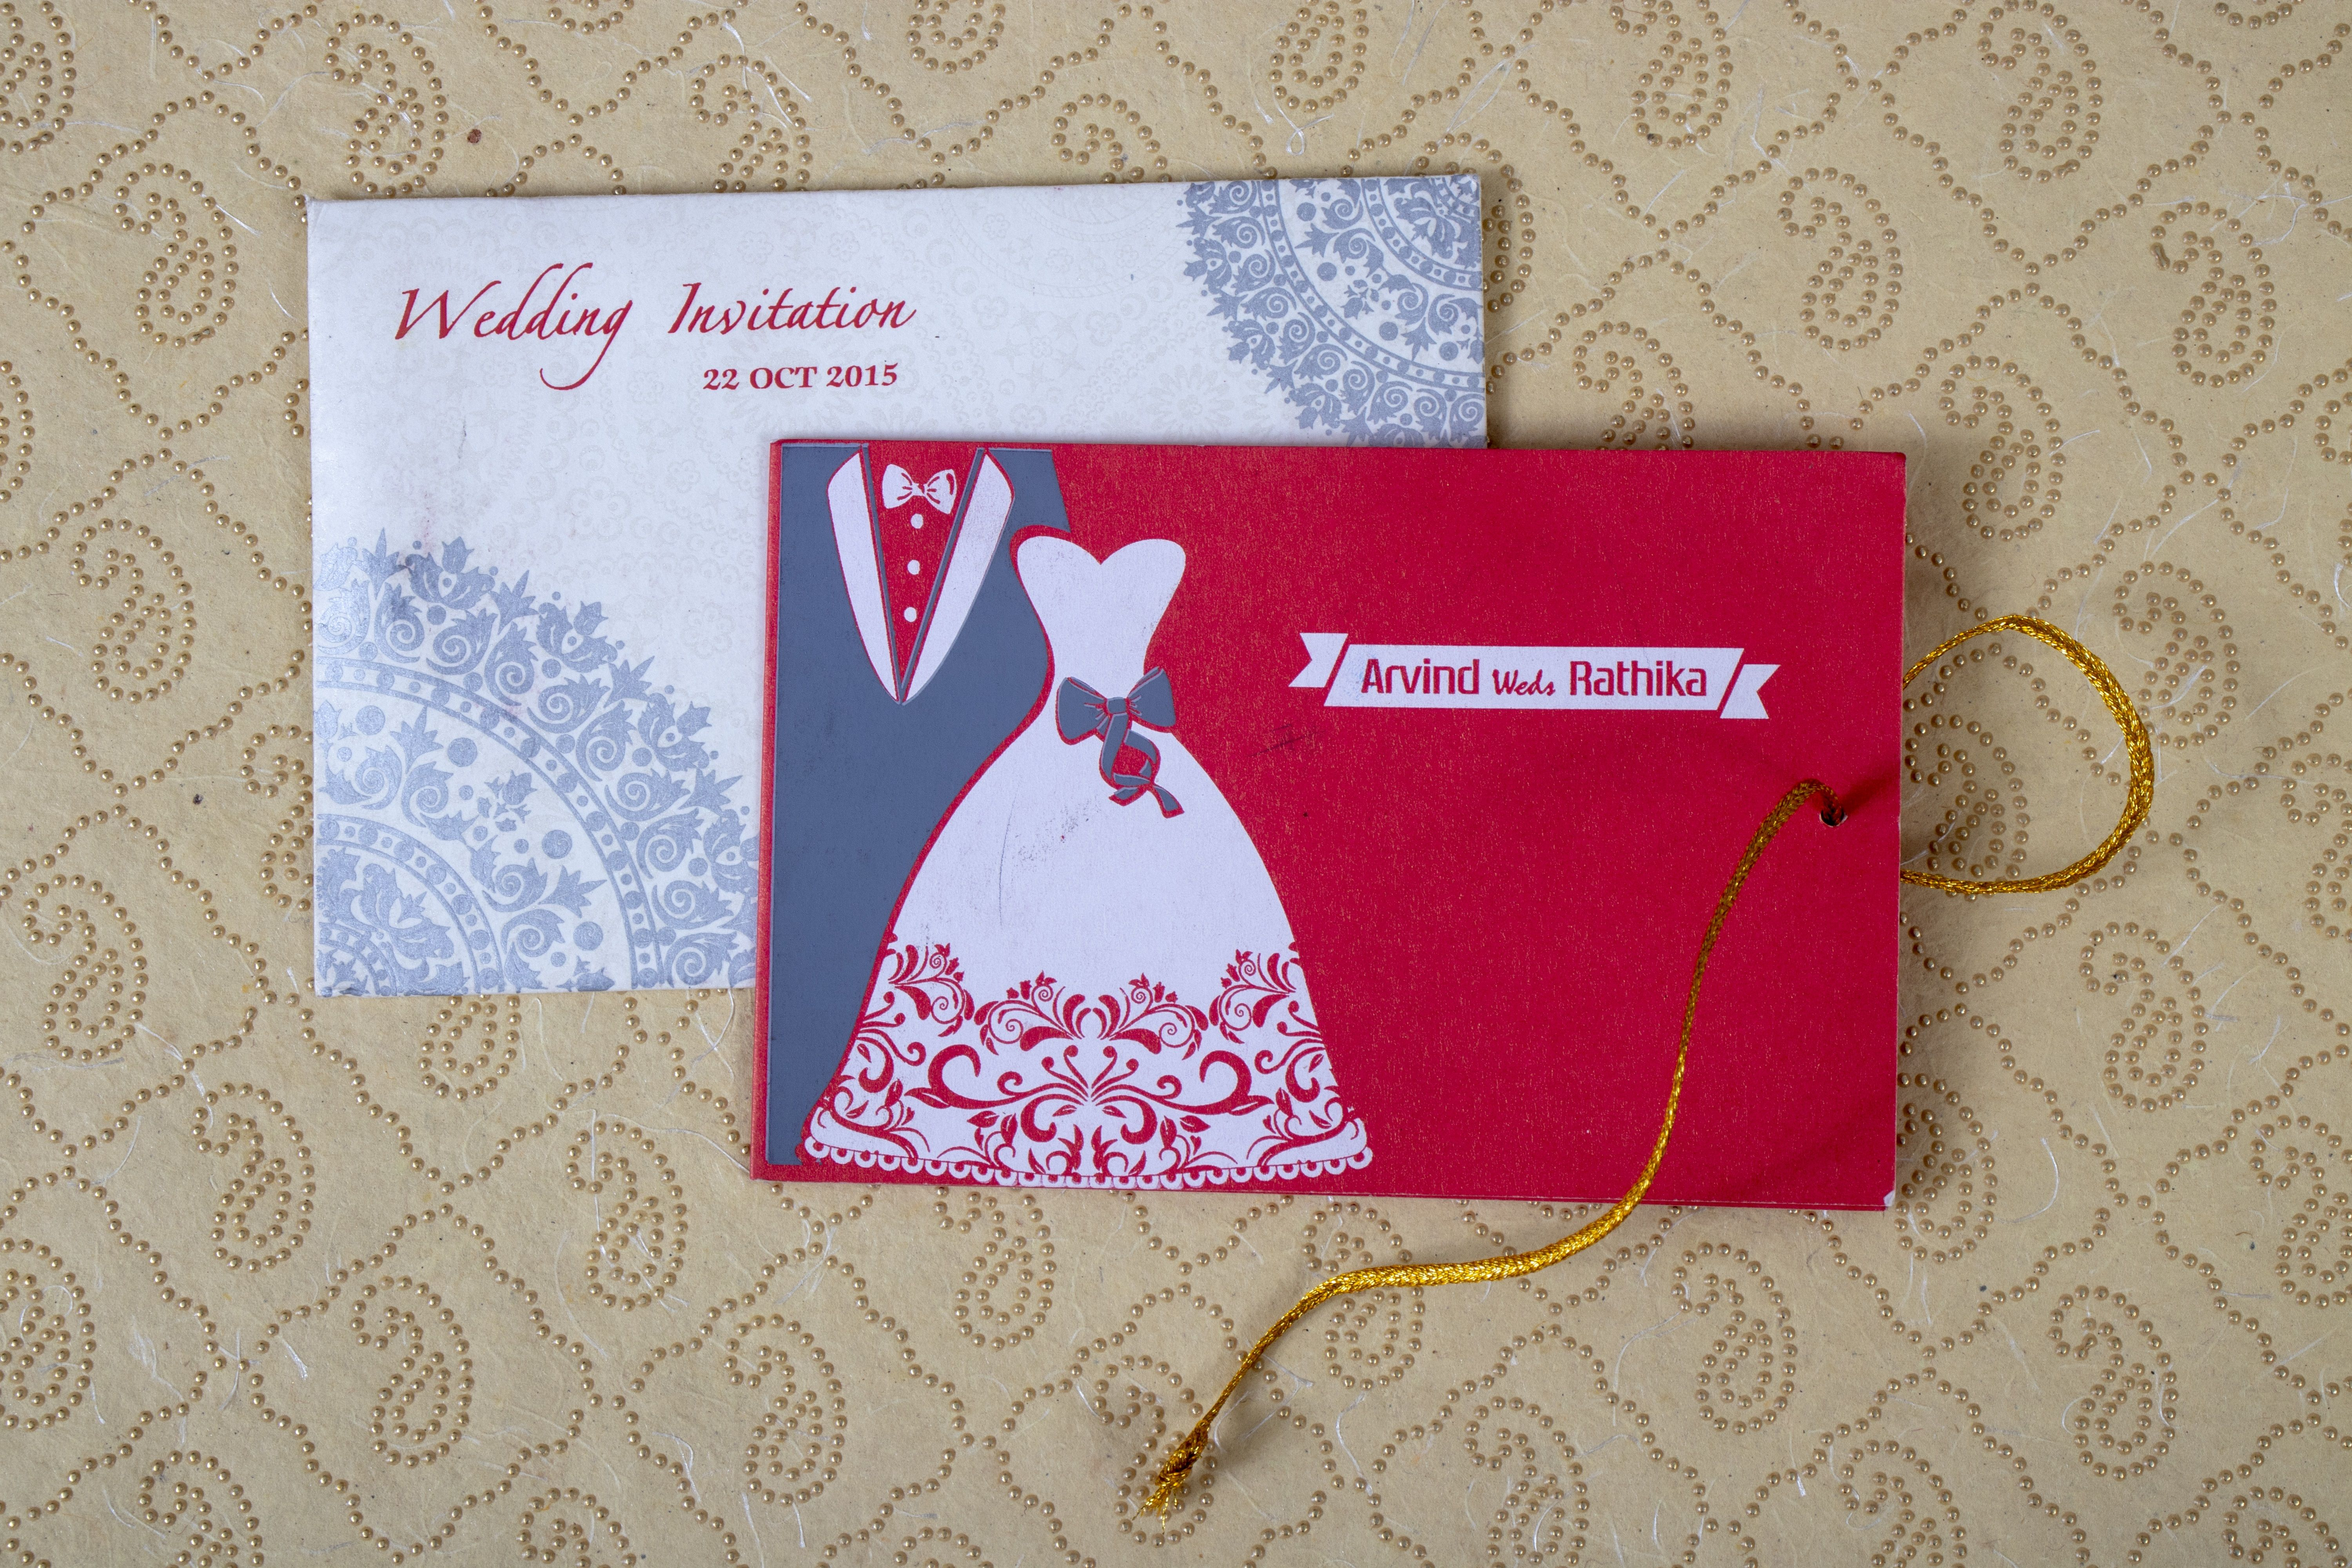 Affordable Friends Invitation Cards For Your Marriage A Cost Effective Budget Card For Your Wedding For Mor Marriage Cards Indian Invitation Cards Budget Card